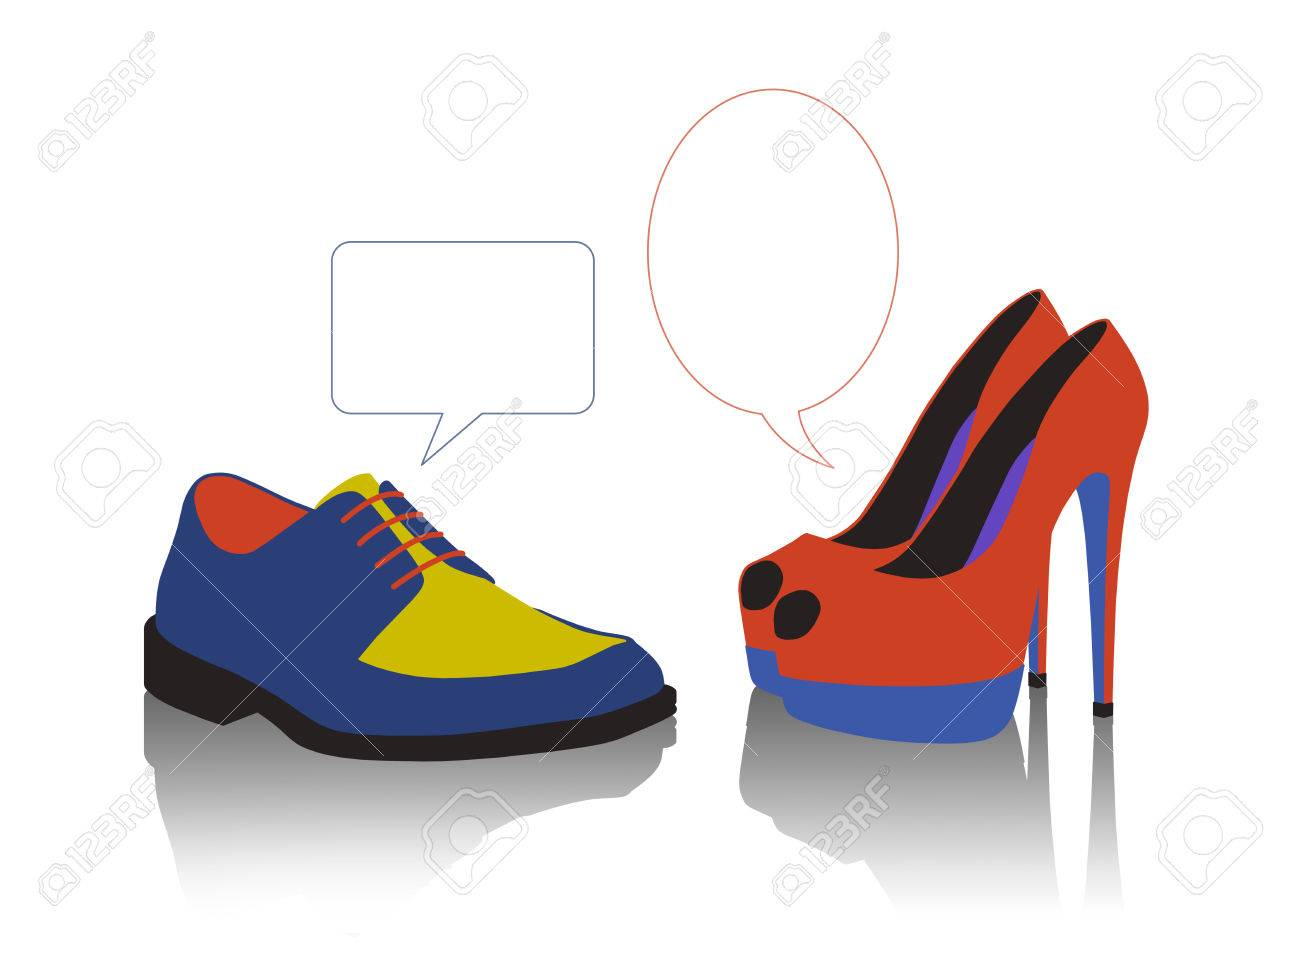 unequal dialogue between a colorful man s and woman s shoes Stock Photo - 23481529